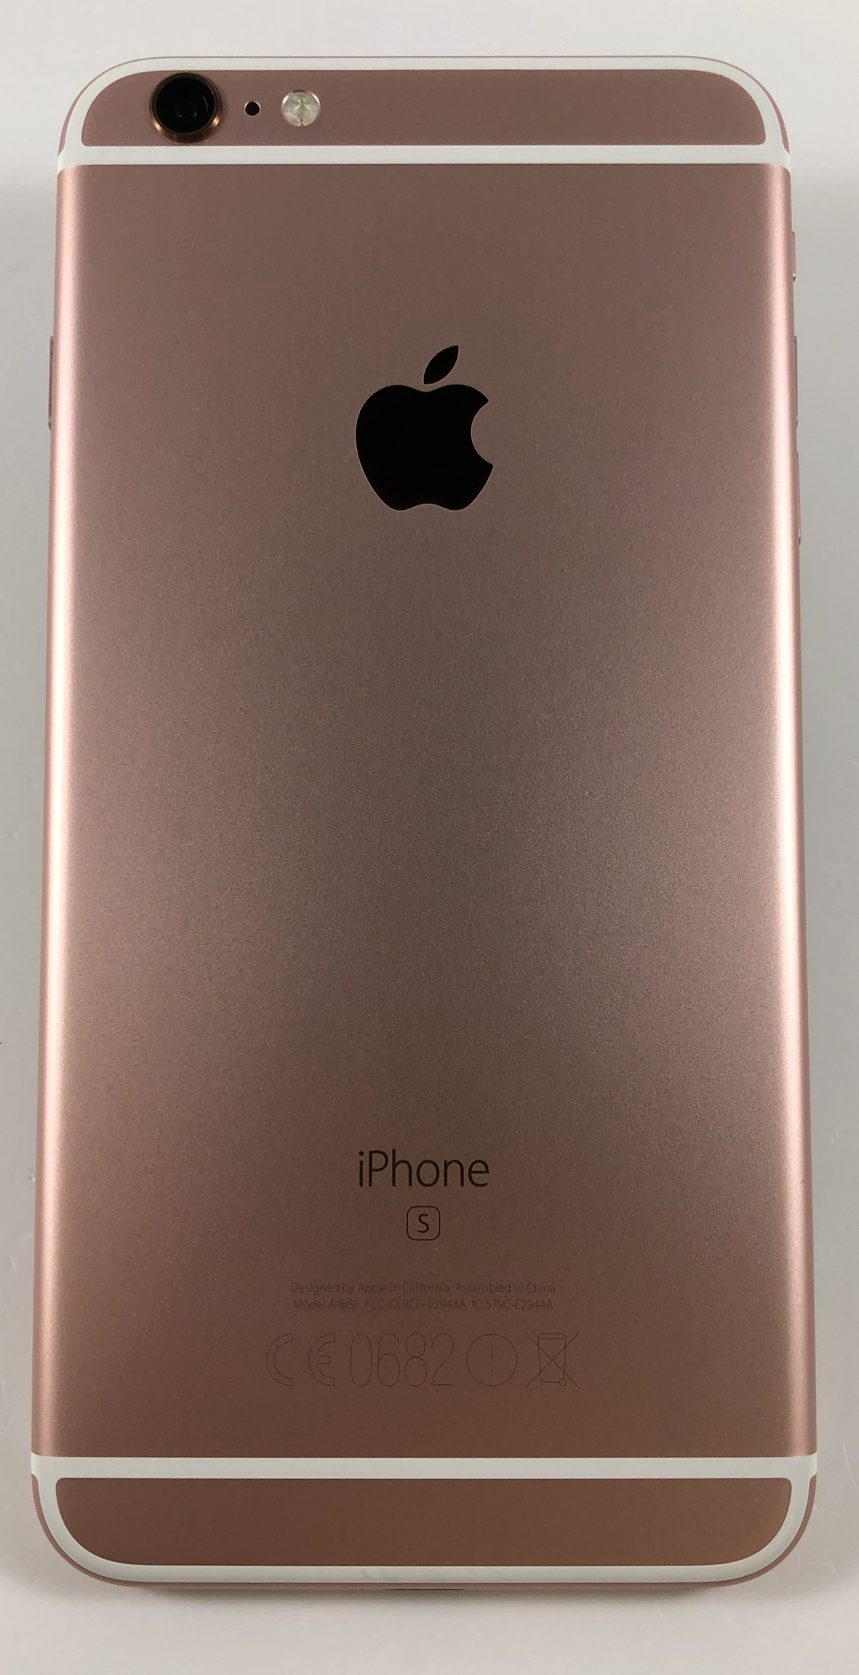 iPhone 6S Plus 16GB, 16GB, Rose Gold, Bild 2